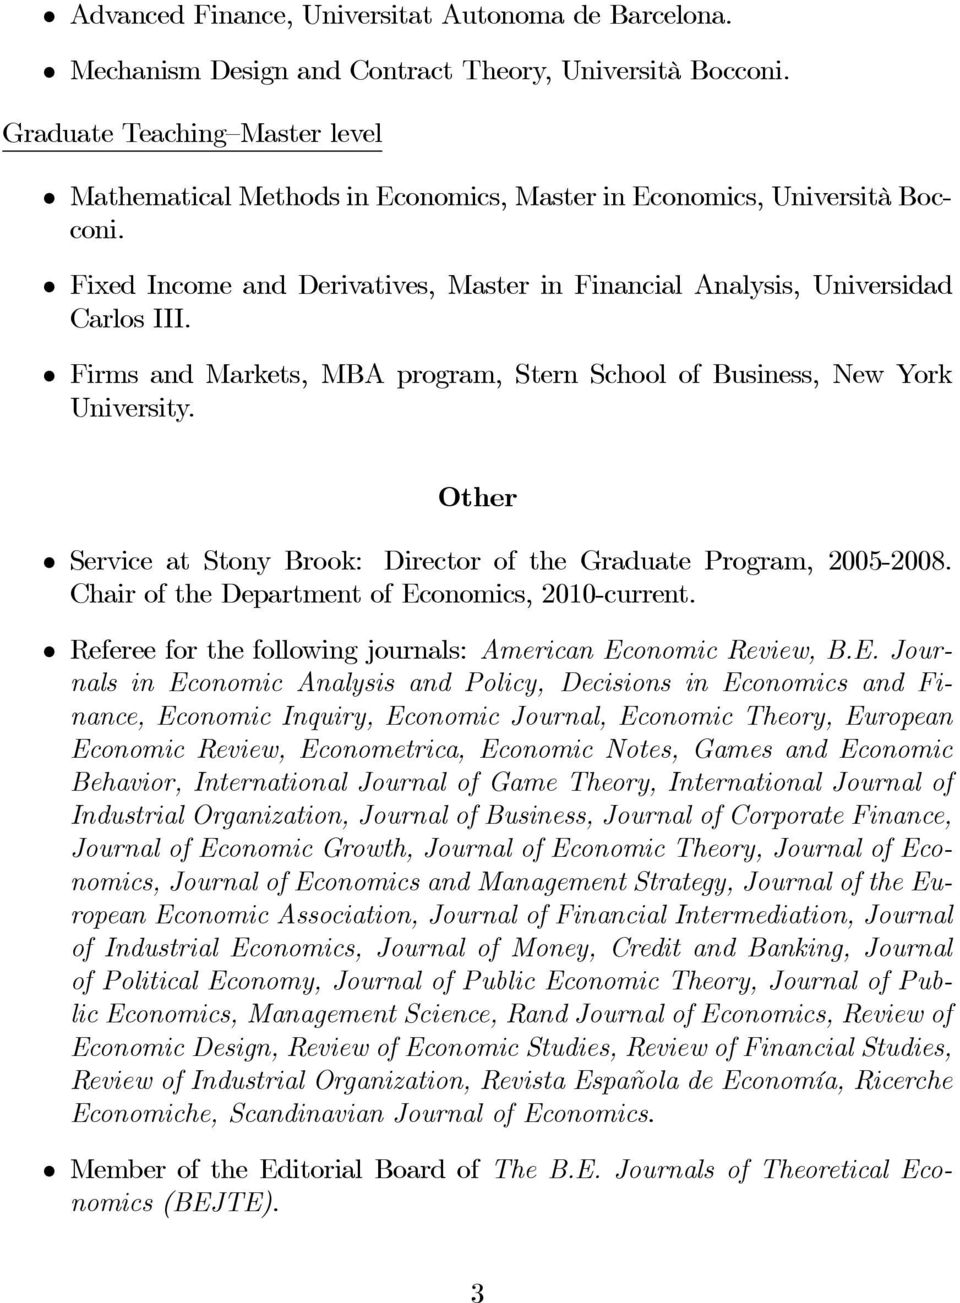 Firms and Markets, MBA program, Stern School of Business, New York University. Other Service at Stony Brook: Director of the Graduate Program, 2005-2008.